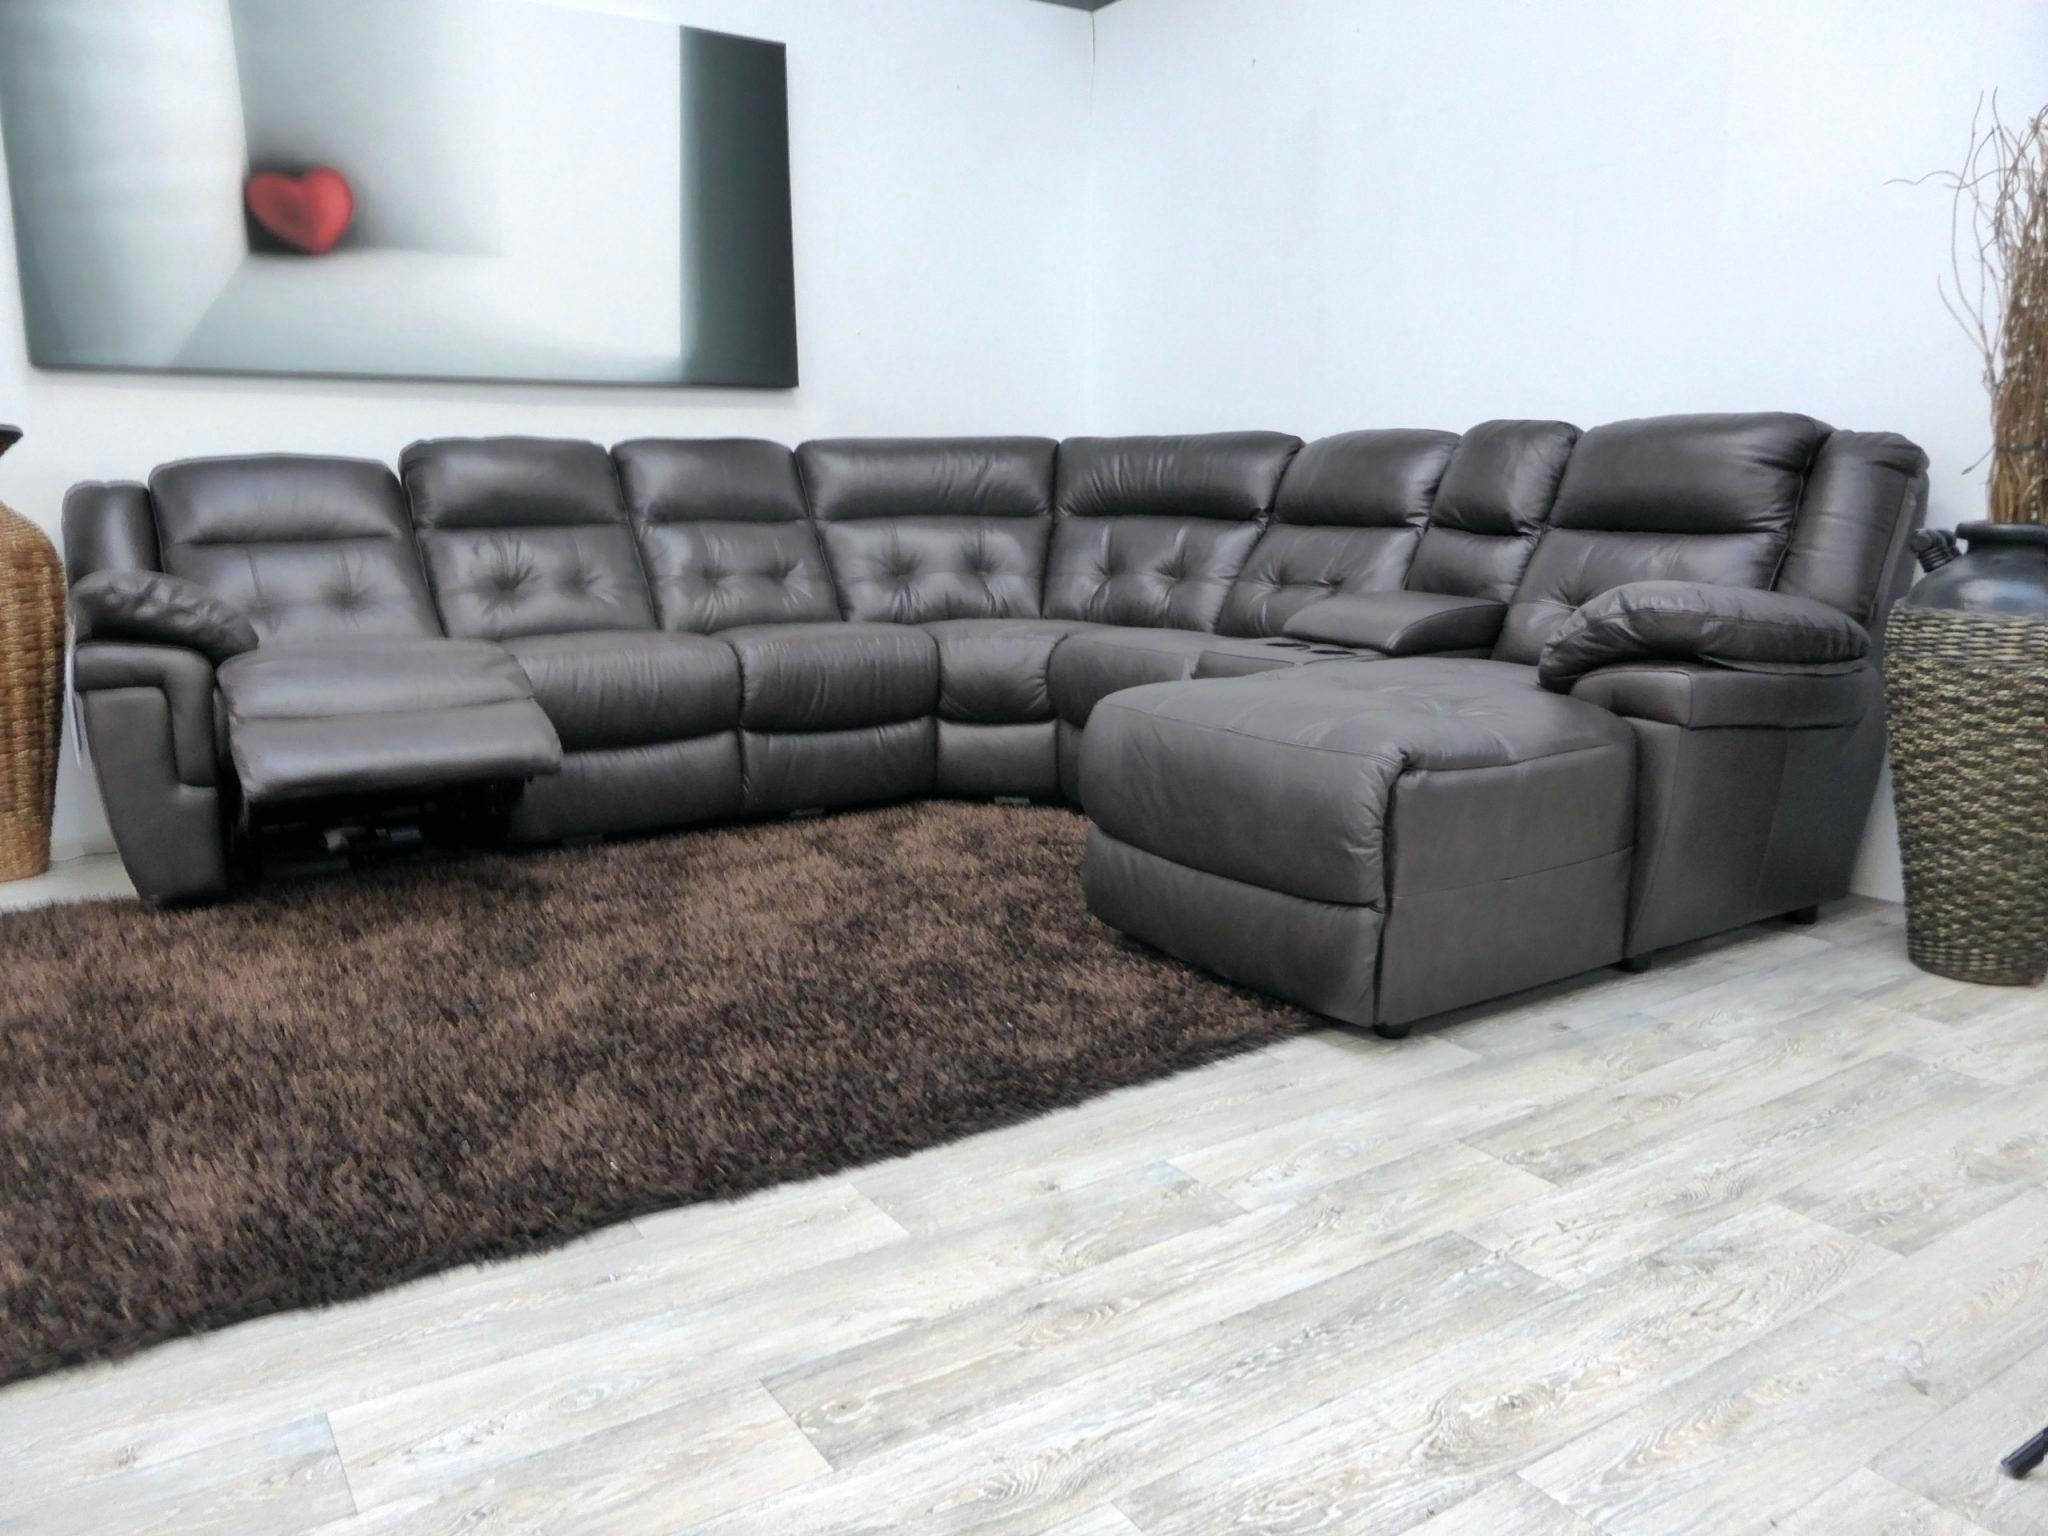 Awesome Lazy Boy Sleeper Sofa Prices 2018 – Couches And Sofas Ideas Within Most Popular Lazy Boy Chaises (View 11 of 15)